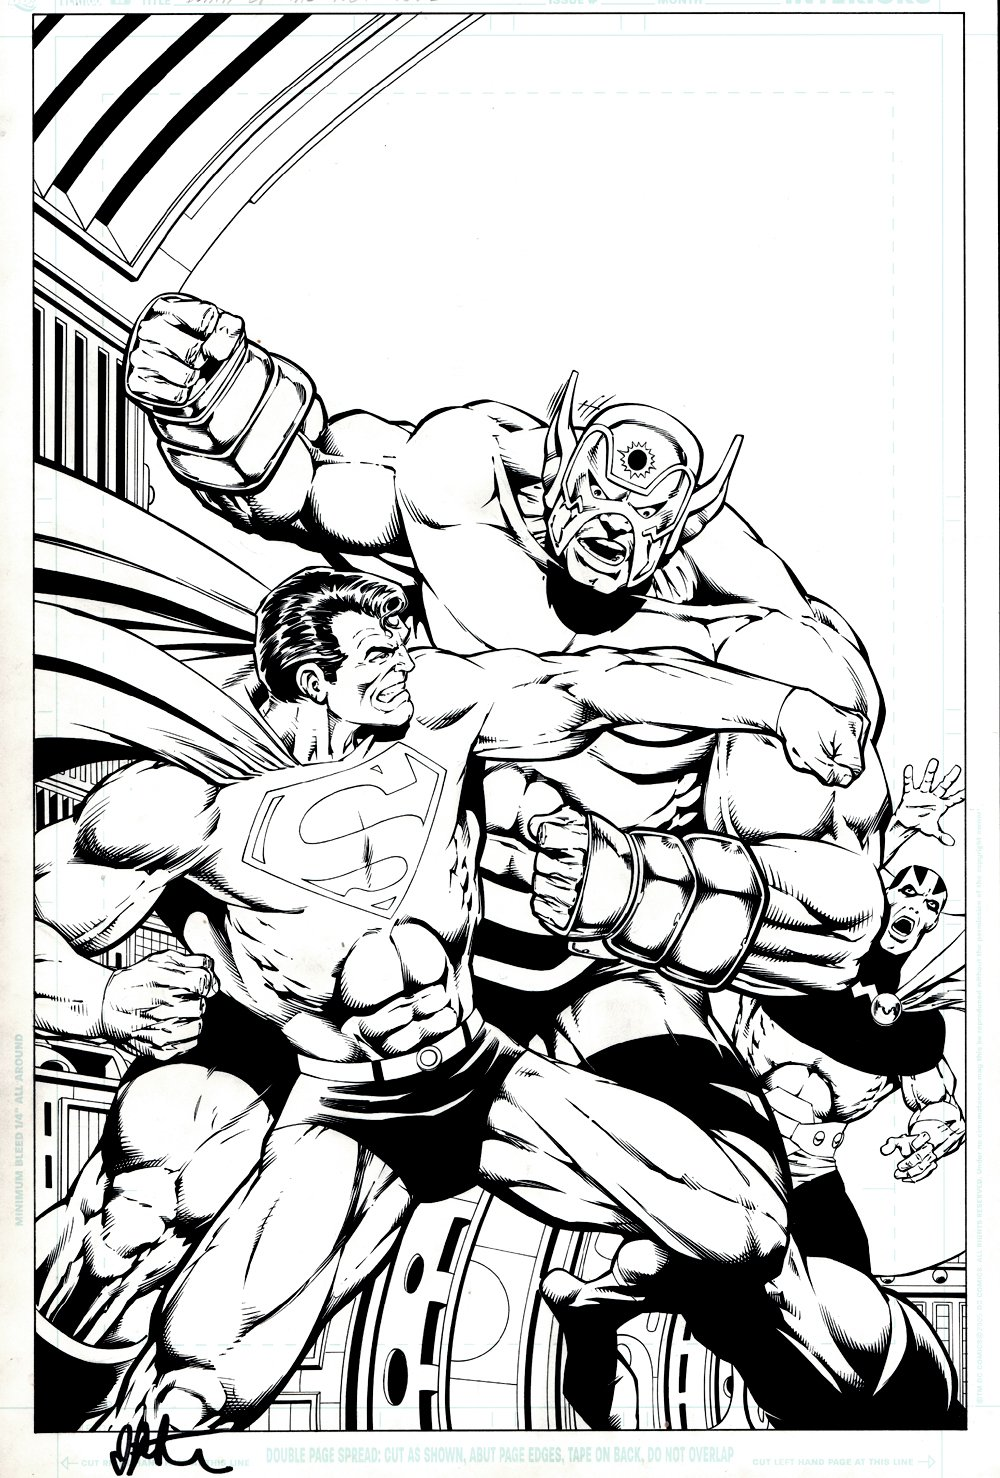 Death of the New Gods #2 Cover (Superman Battles Orion! Mr. Miracle Helps!) 2007